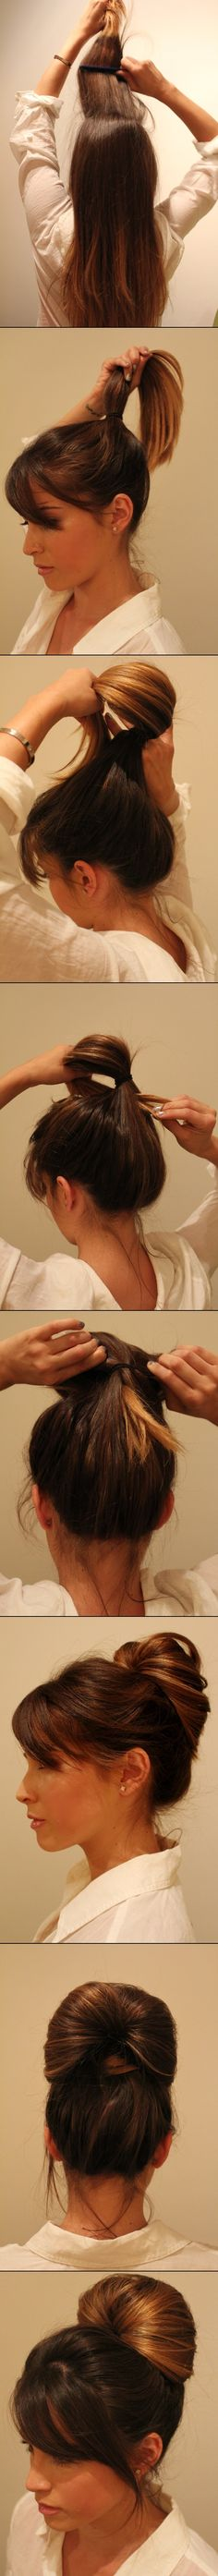 Easy and different hairstyle for people who like to play around with new ideas :)